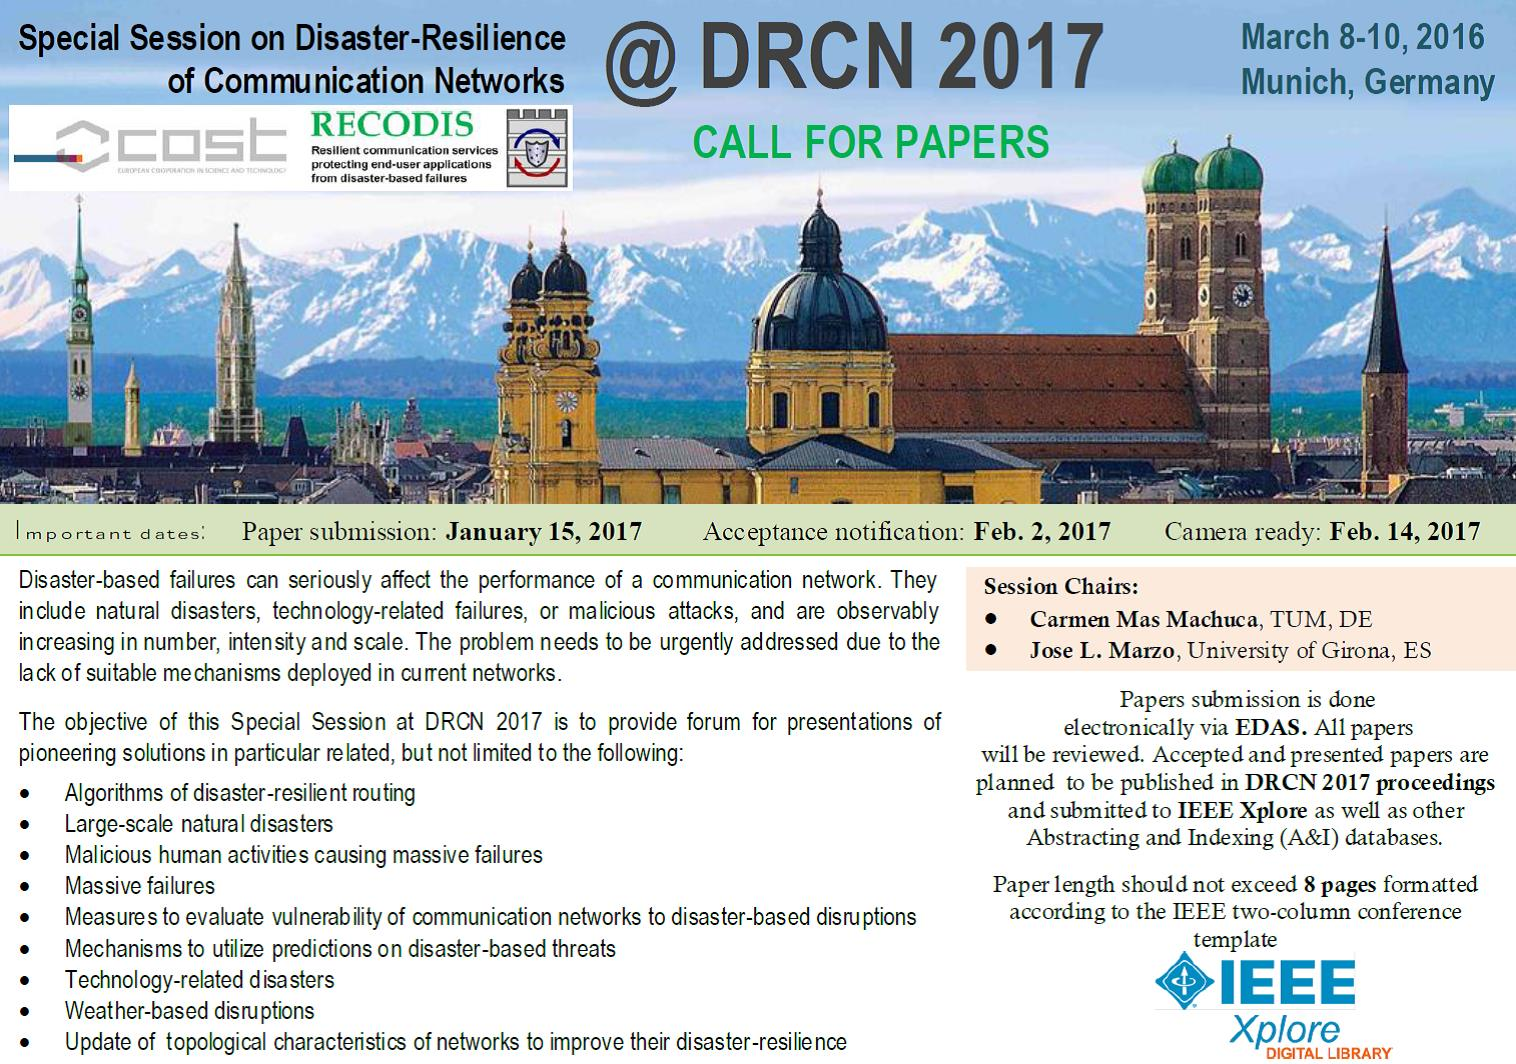 Call for Paper for subconference RECORDIS at DRCN 2017